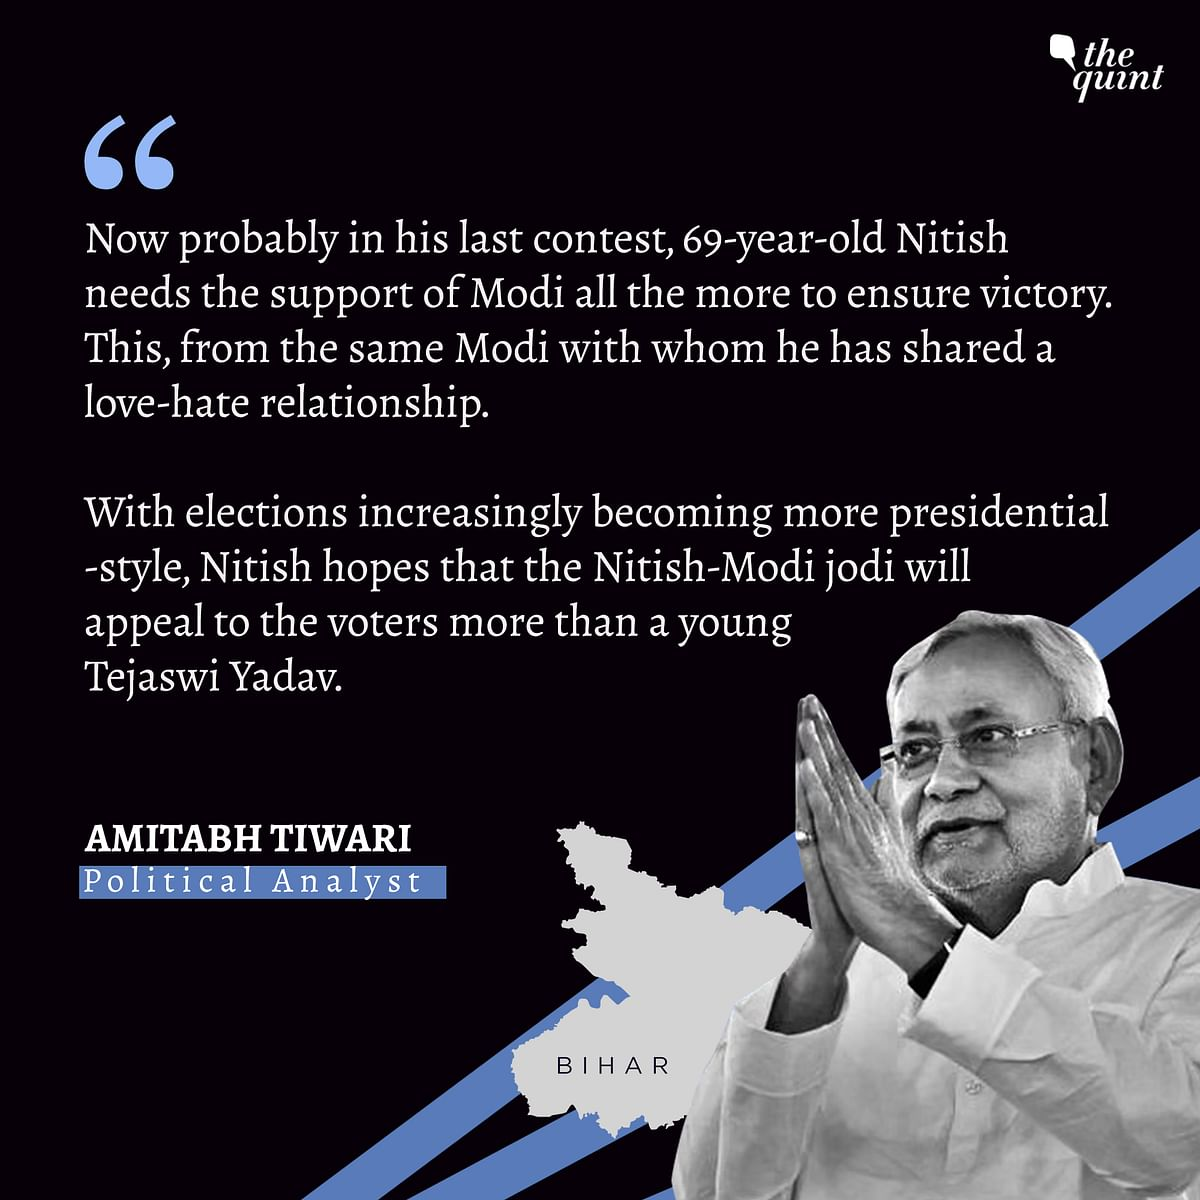 Bihar Polls: Will Modi 'Help' Nitish Win Despite 'Differences'?